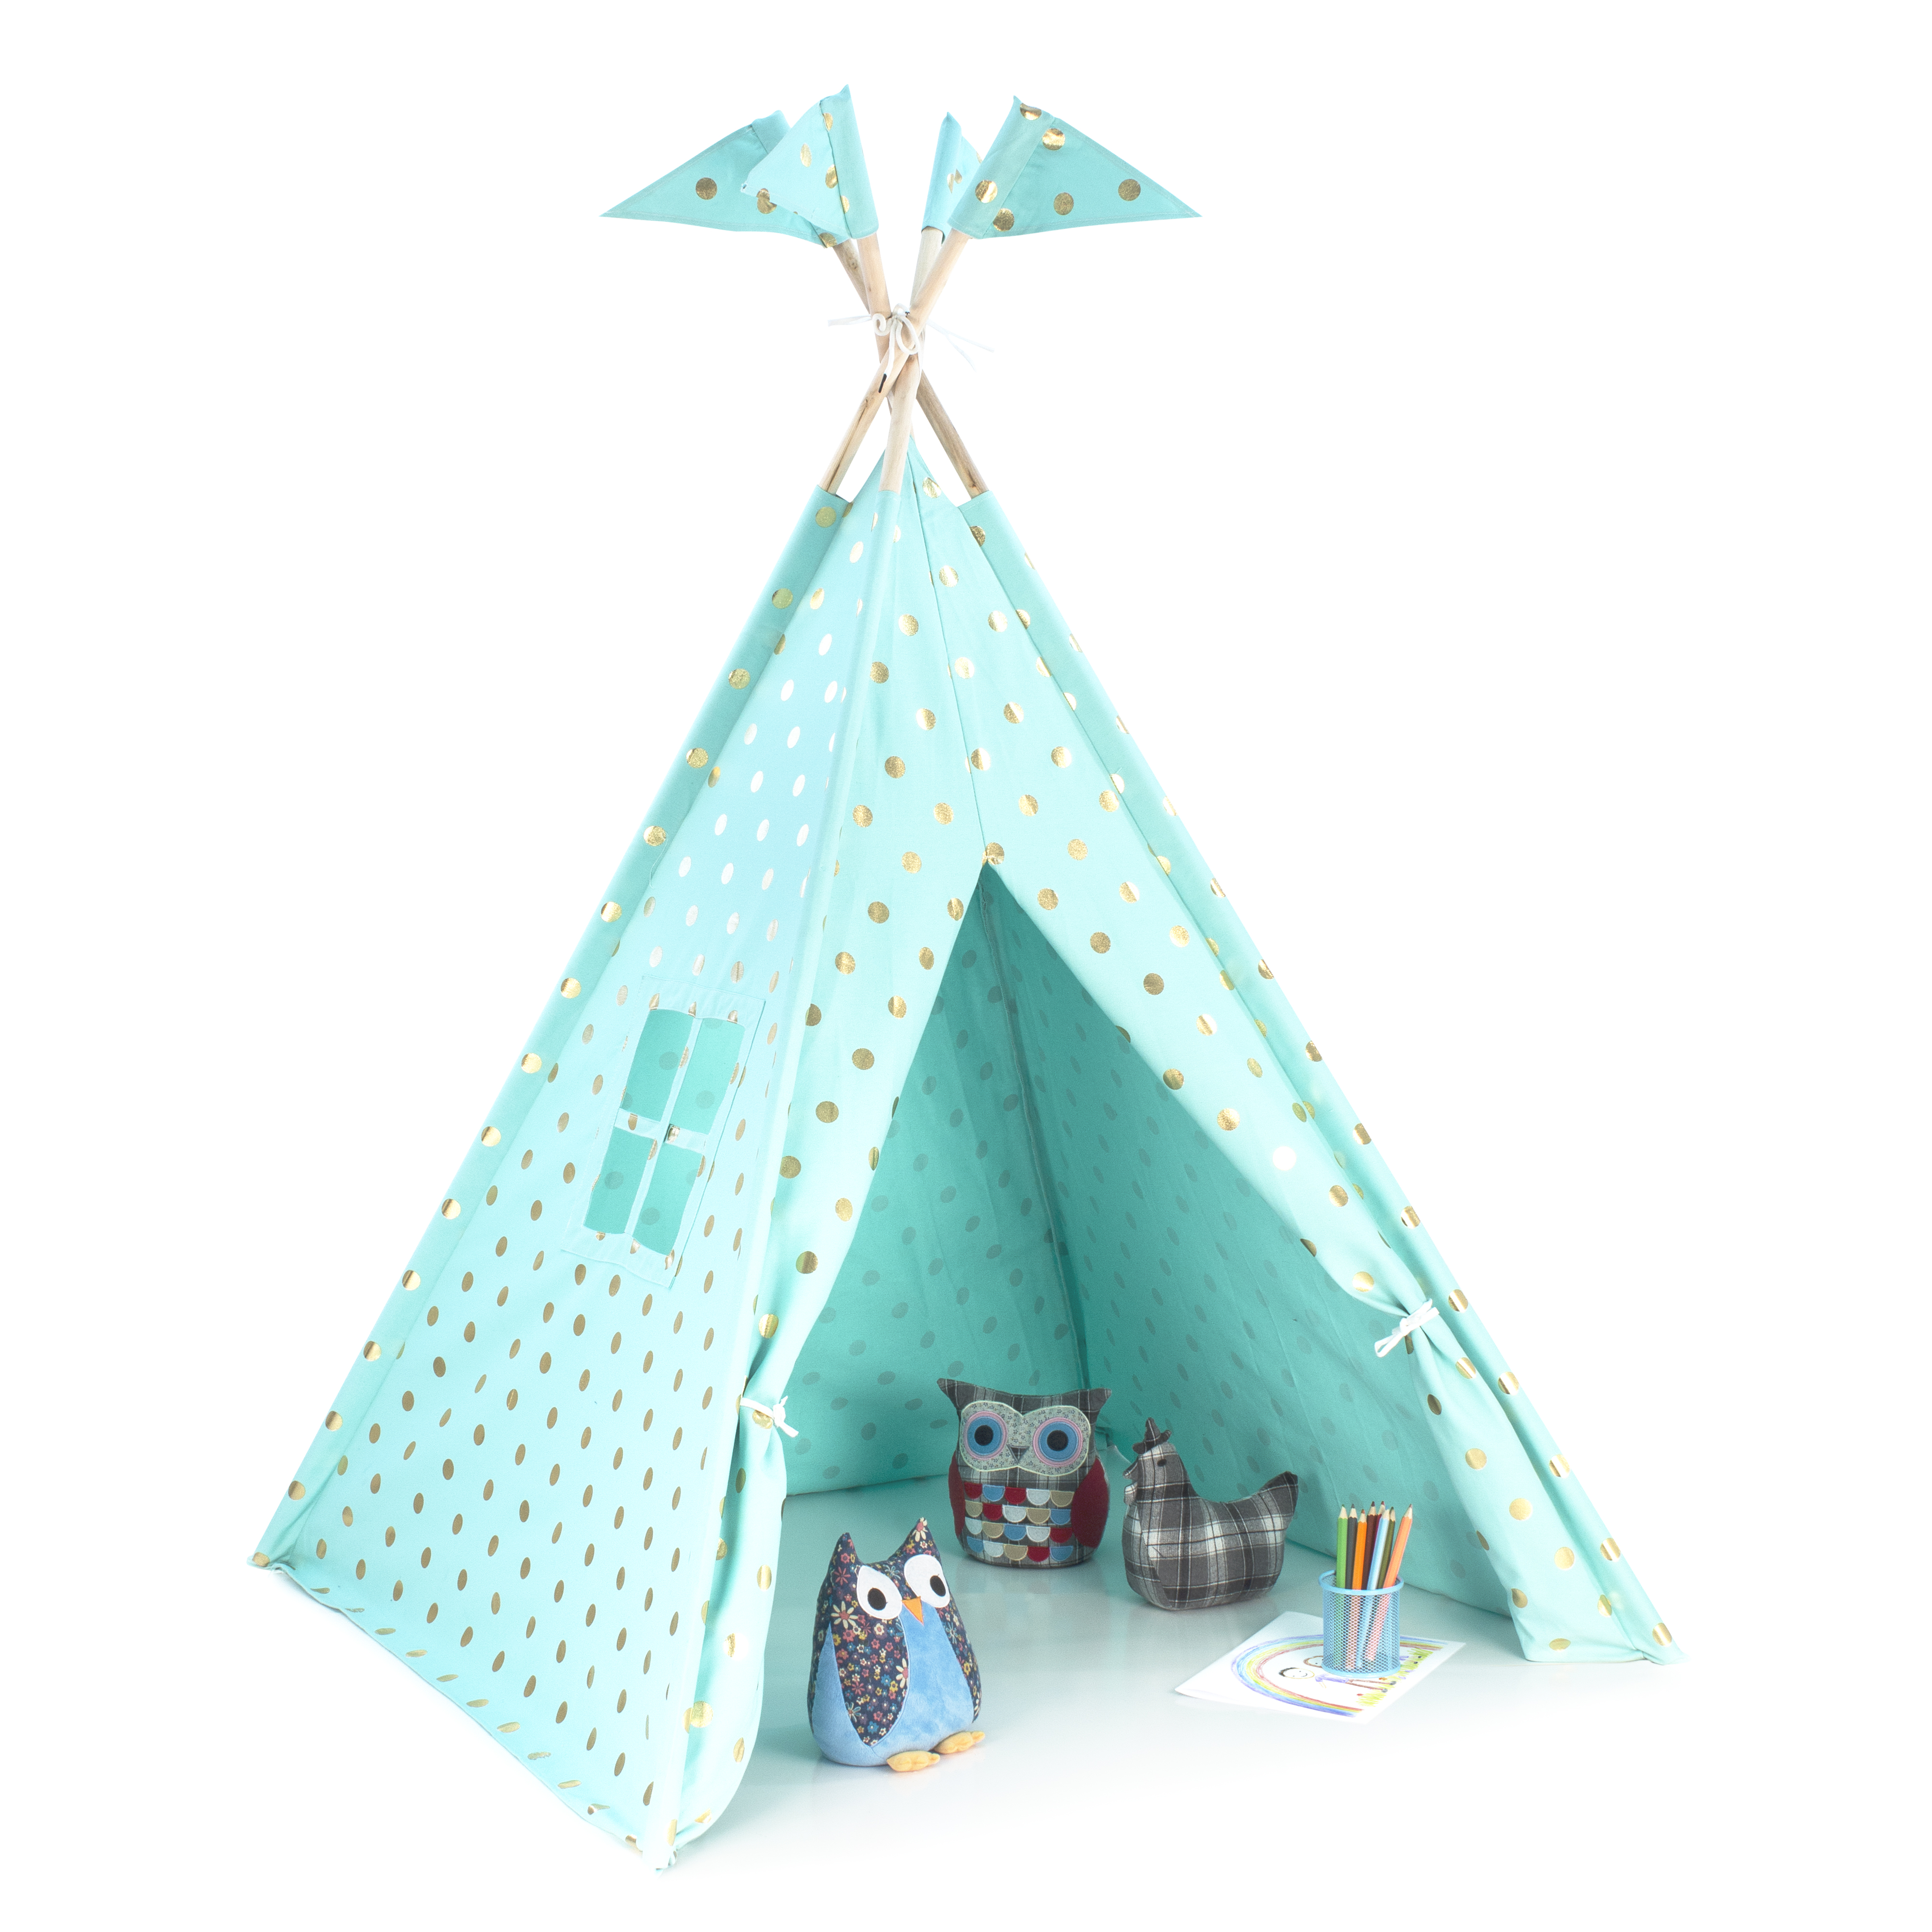 Teepee Gold Coin Kids Play Mint